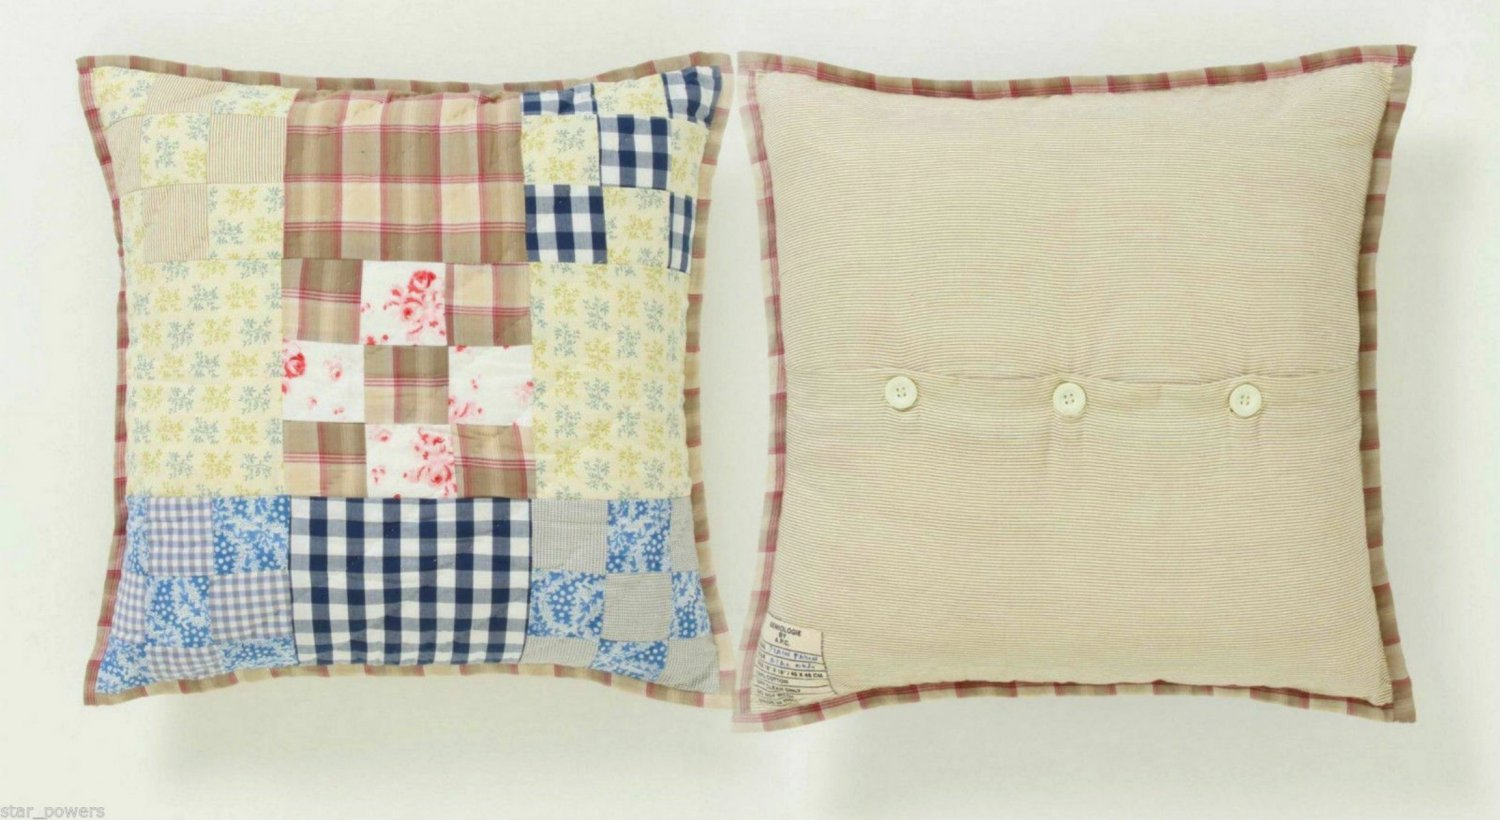 Anthropologie A.P.C. Semiologie Pillow Plain & Patch Hand-quilted Navy